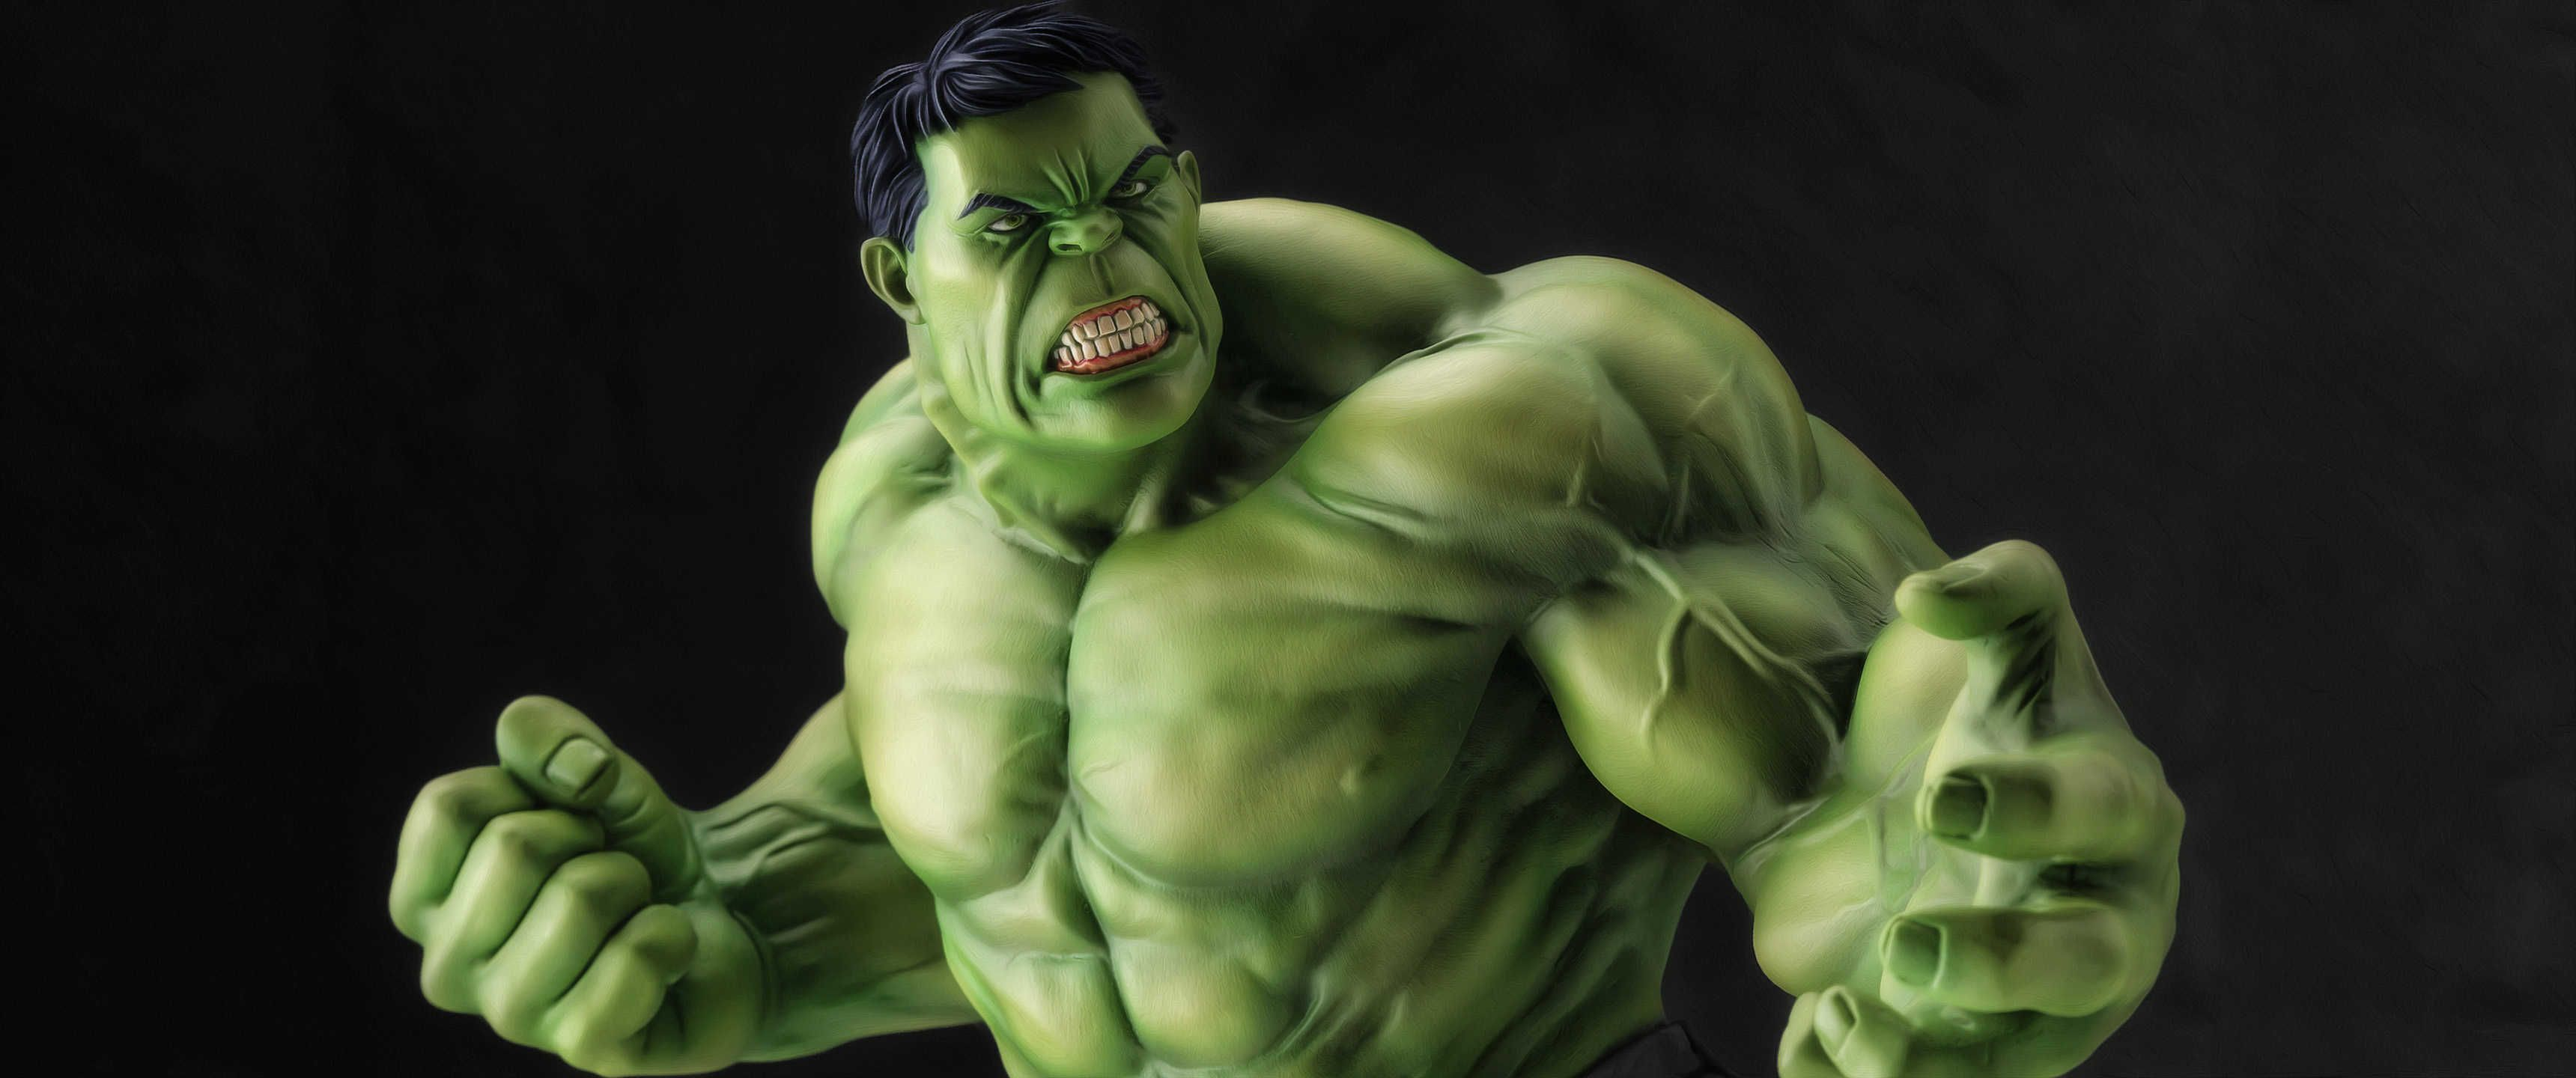 The Great Hulk Video Games Wallpapers Hd Download Beautiful Hd